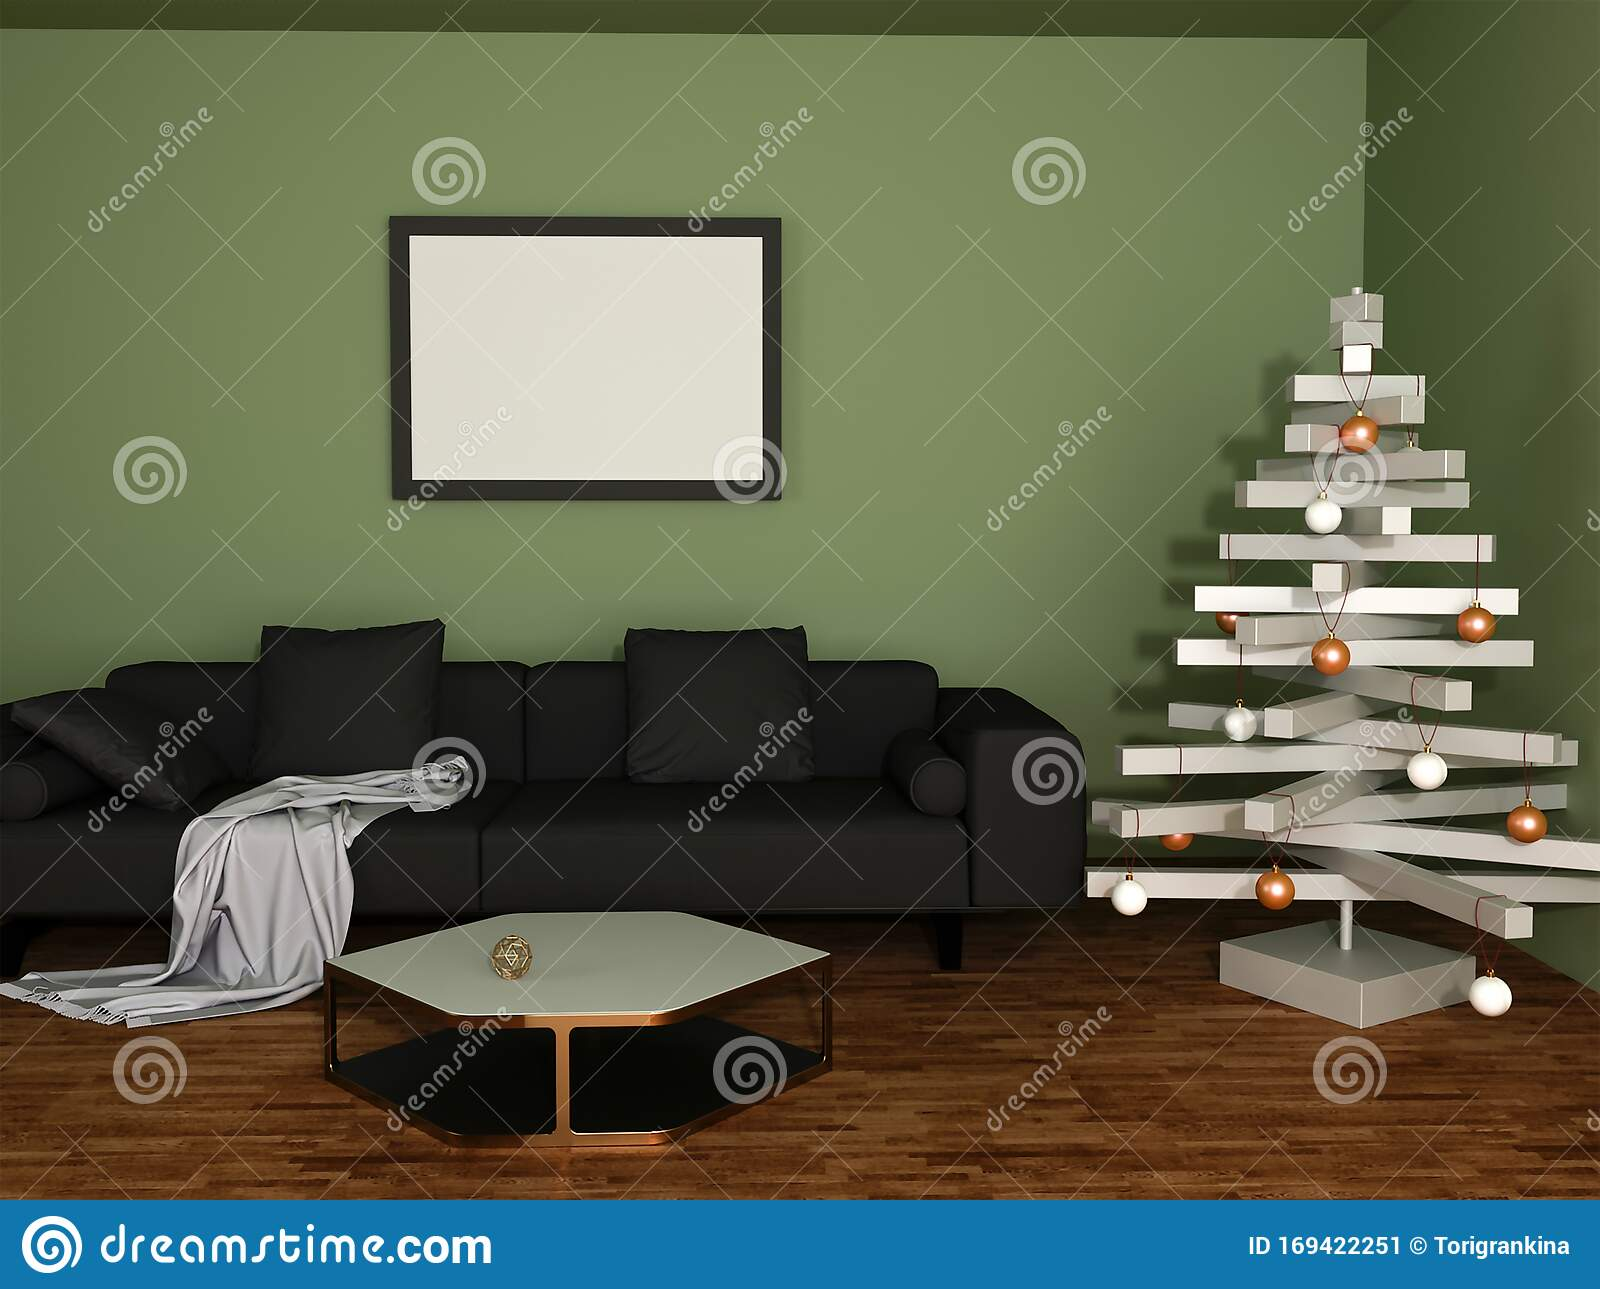 3d Rendering Of Living Room With Black Sofa Green Olive Walls And Christmas Decoration Stock Illustration Illustration Of Interior House 169422251